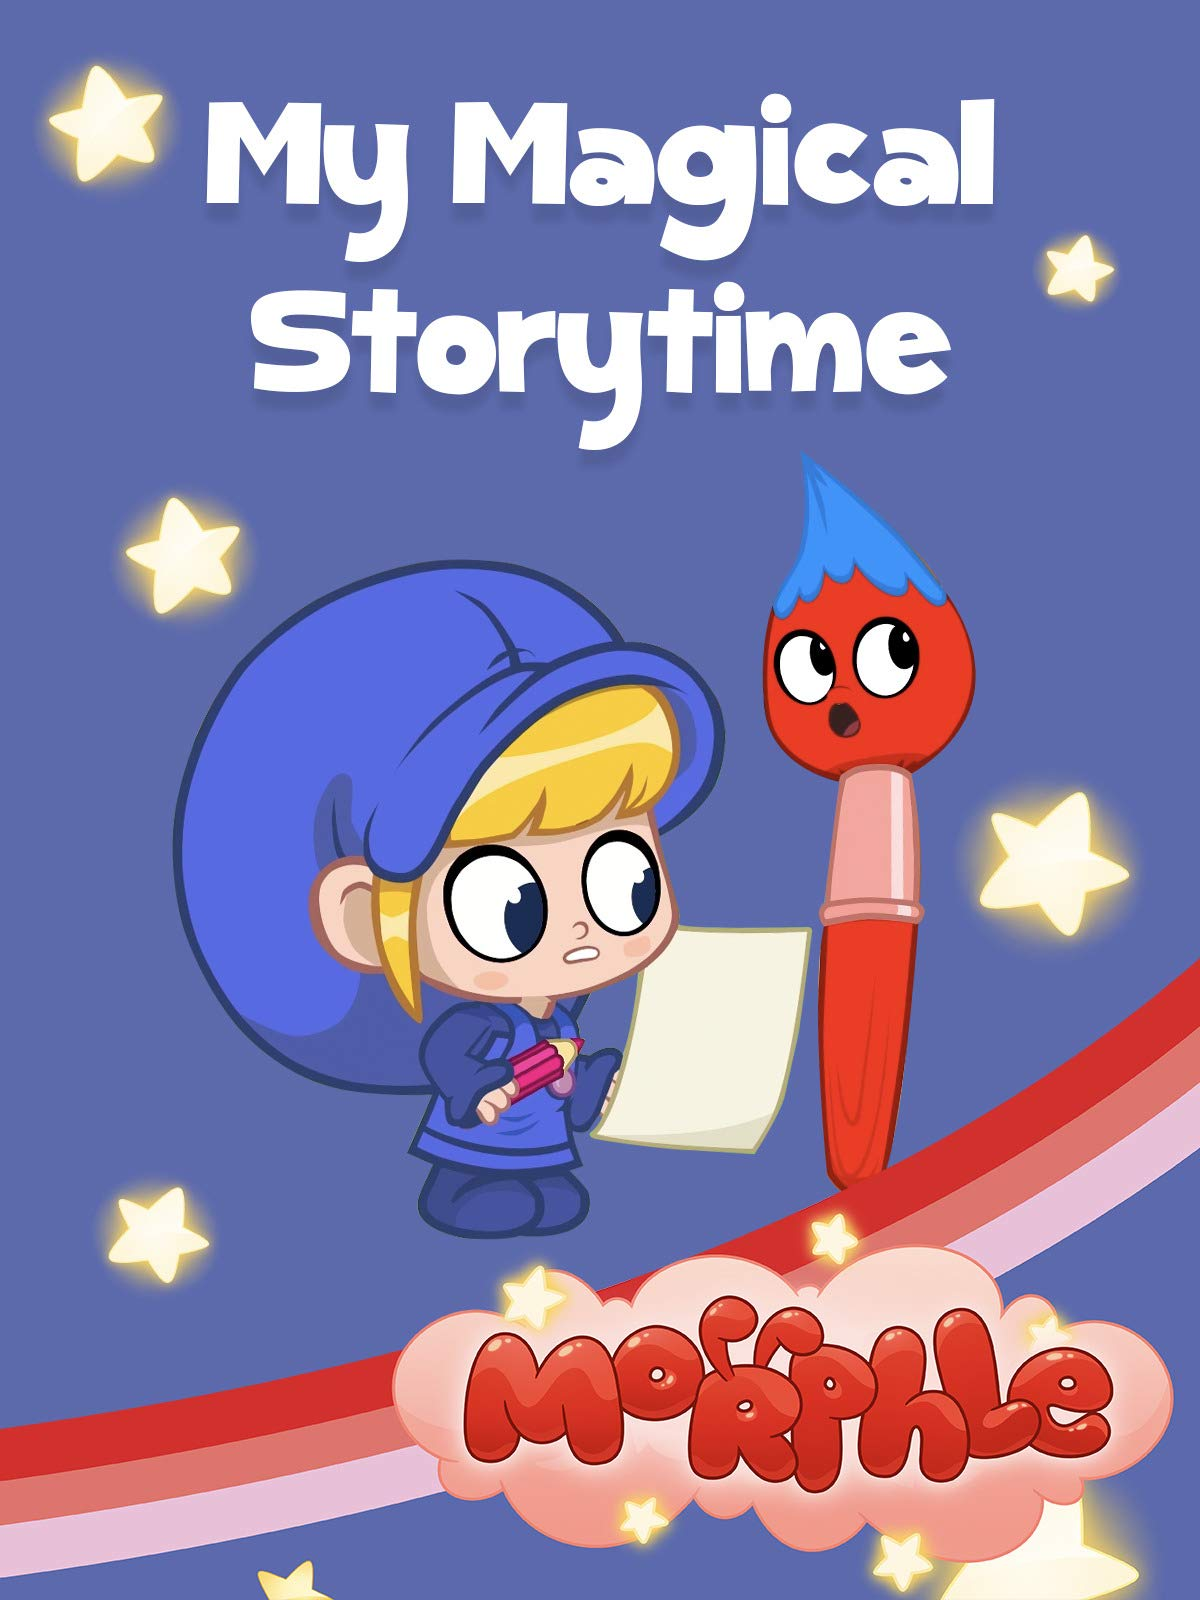 Morphle - My Magical Storytime & More Cartoons for Kids